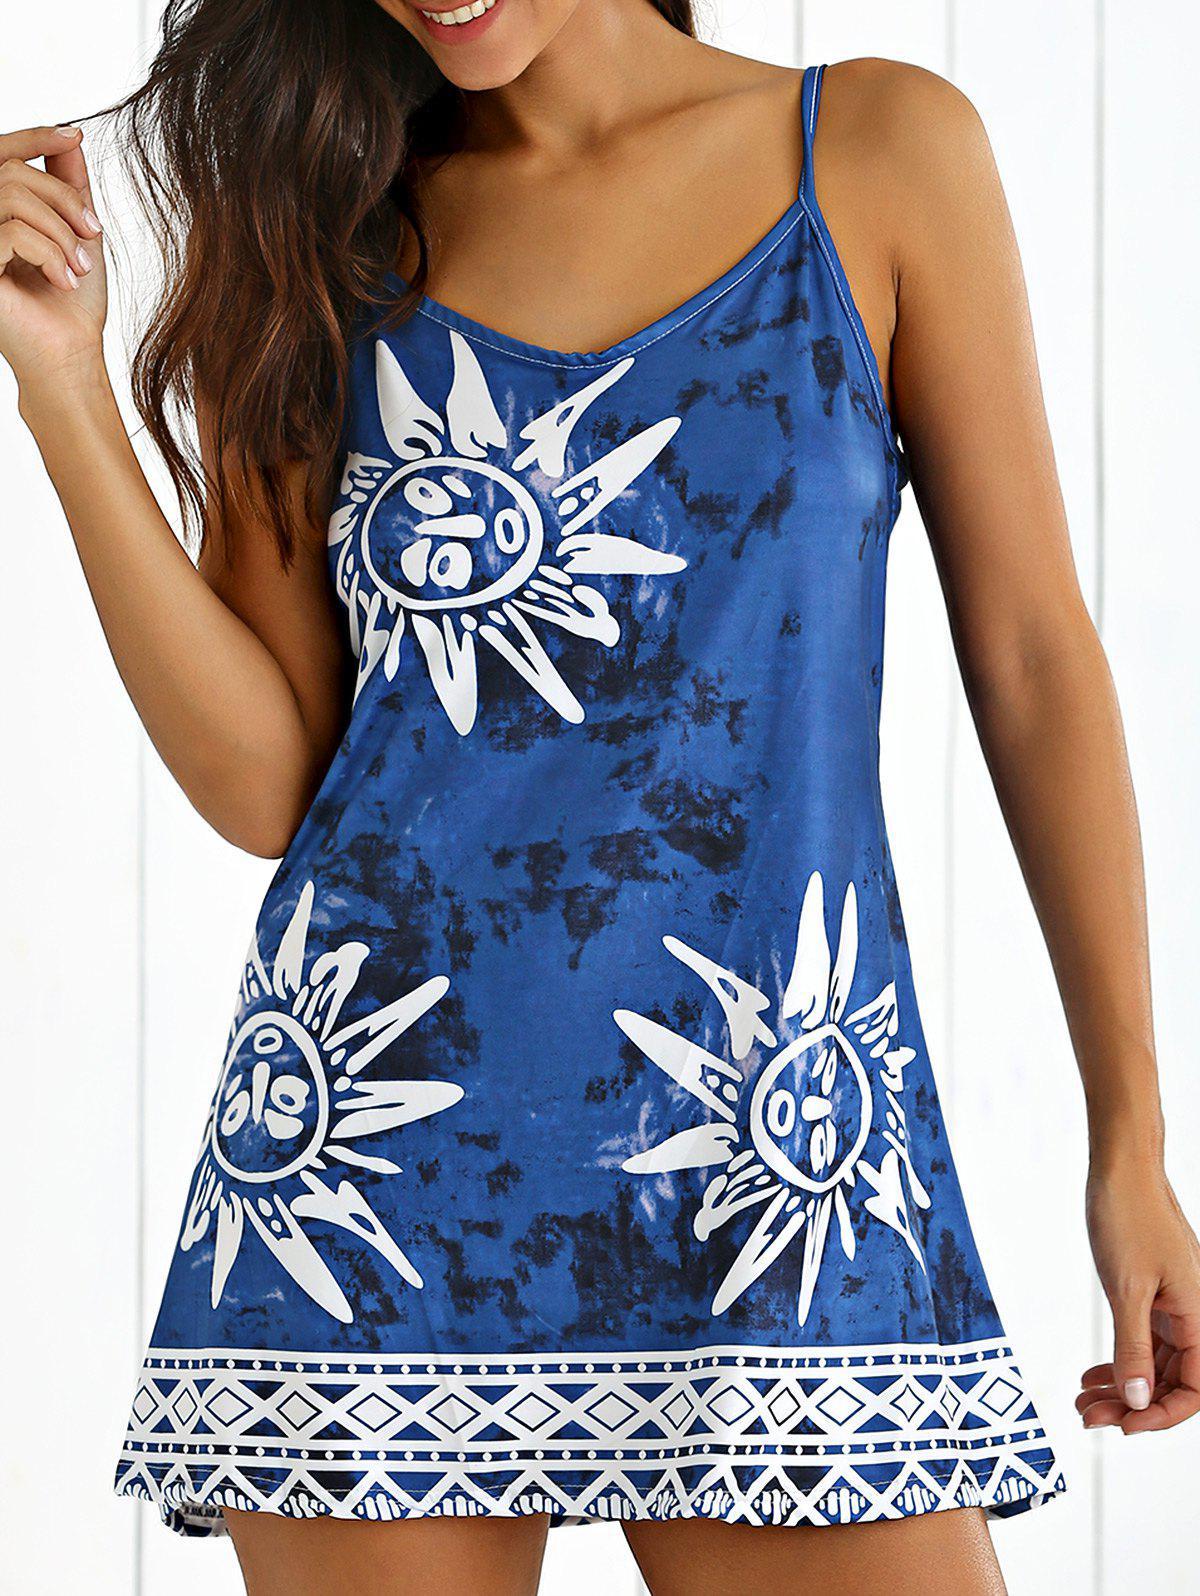 Shops Tribal Print Tie-Dyed Summer Dress